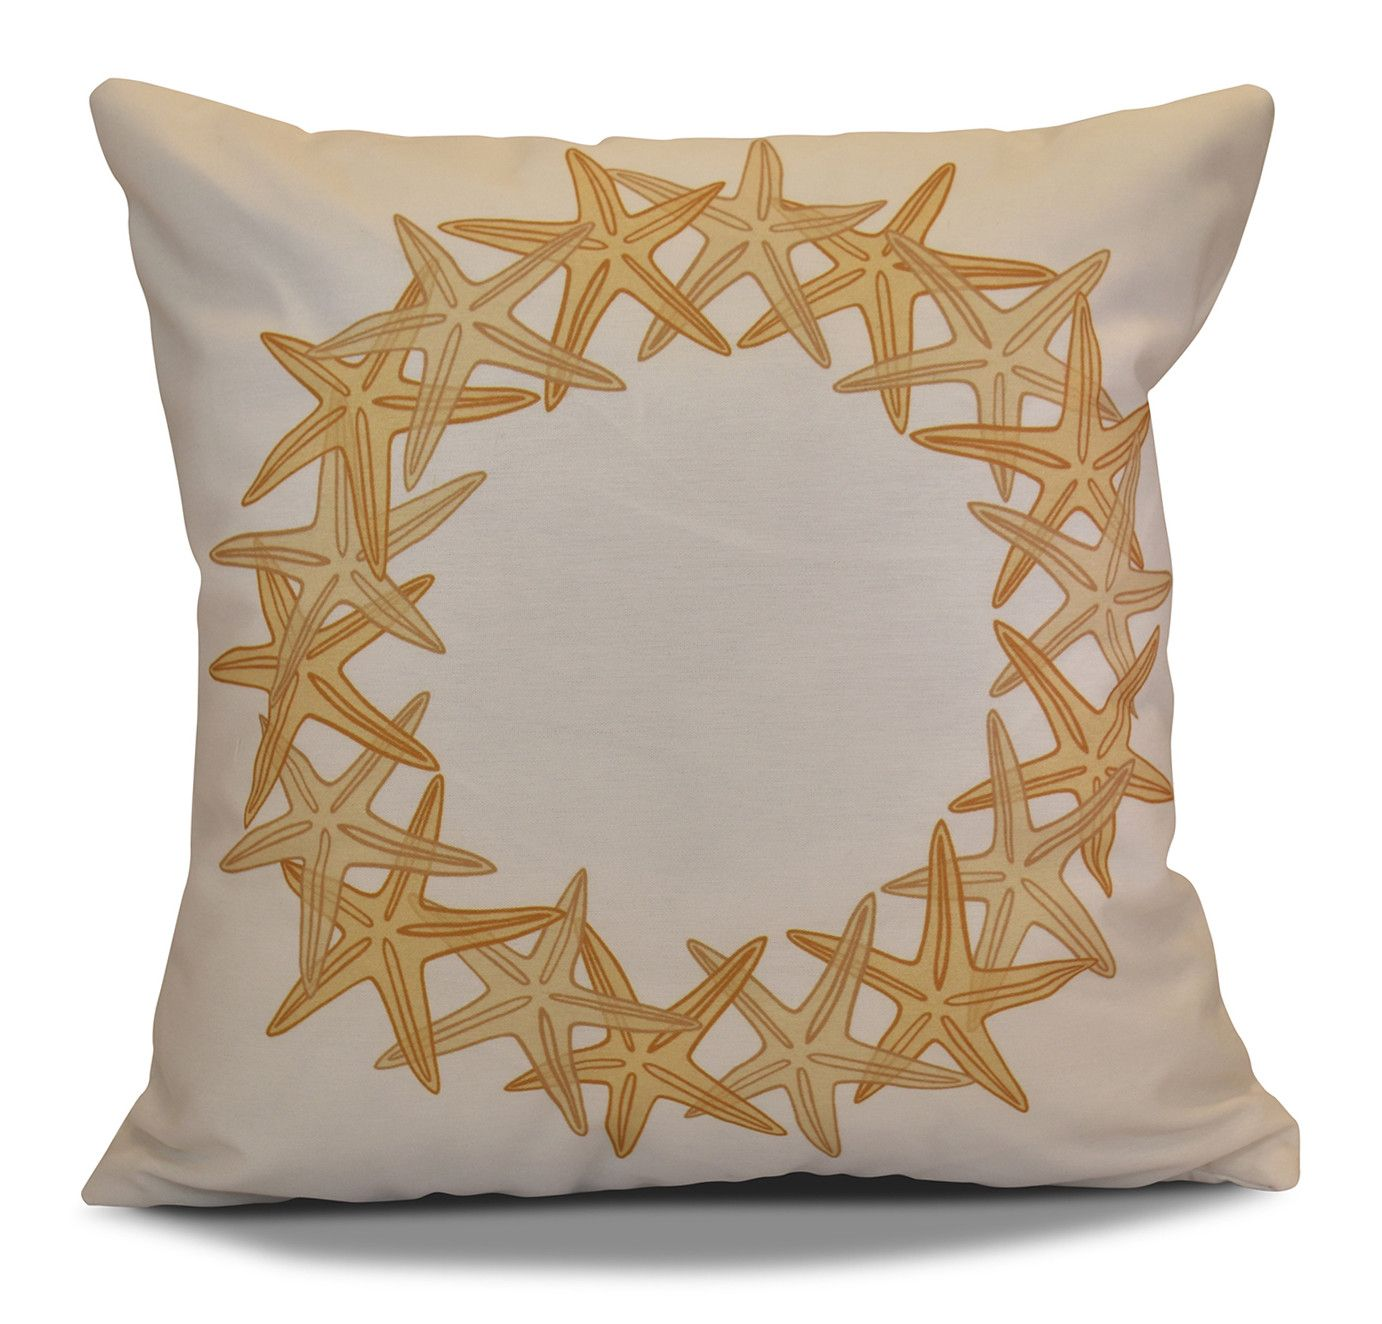 Decorative Holiday Geometric Print Throw Pillow